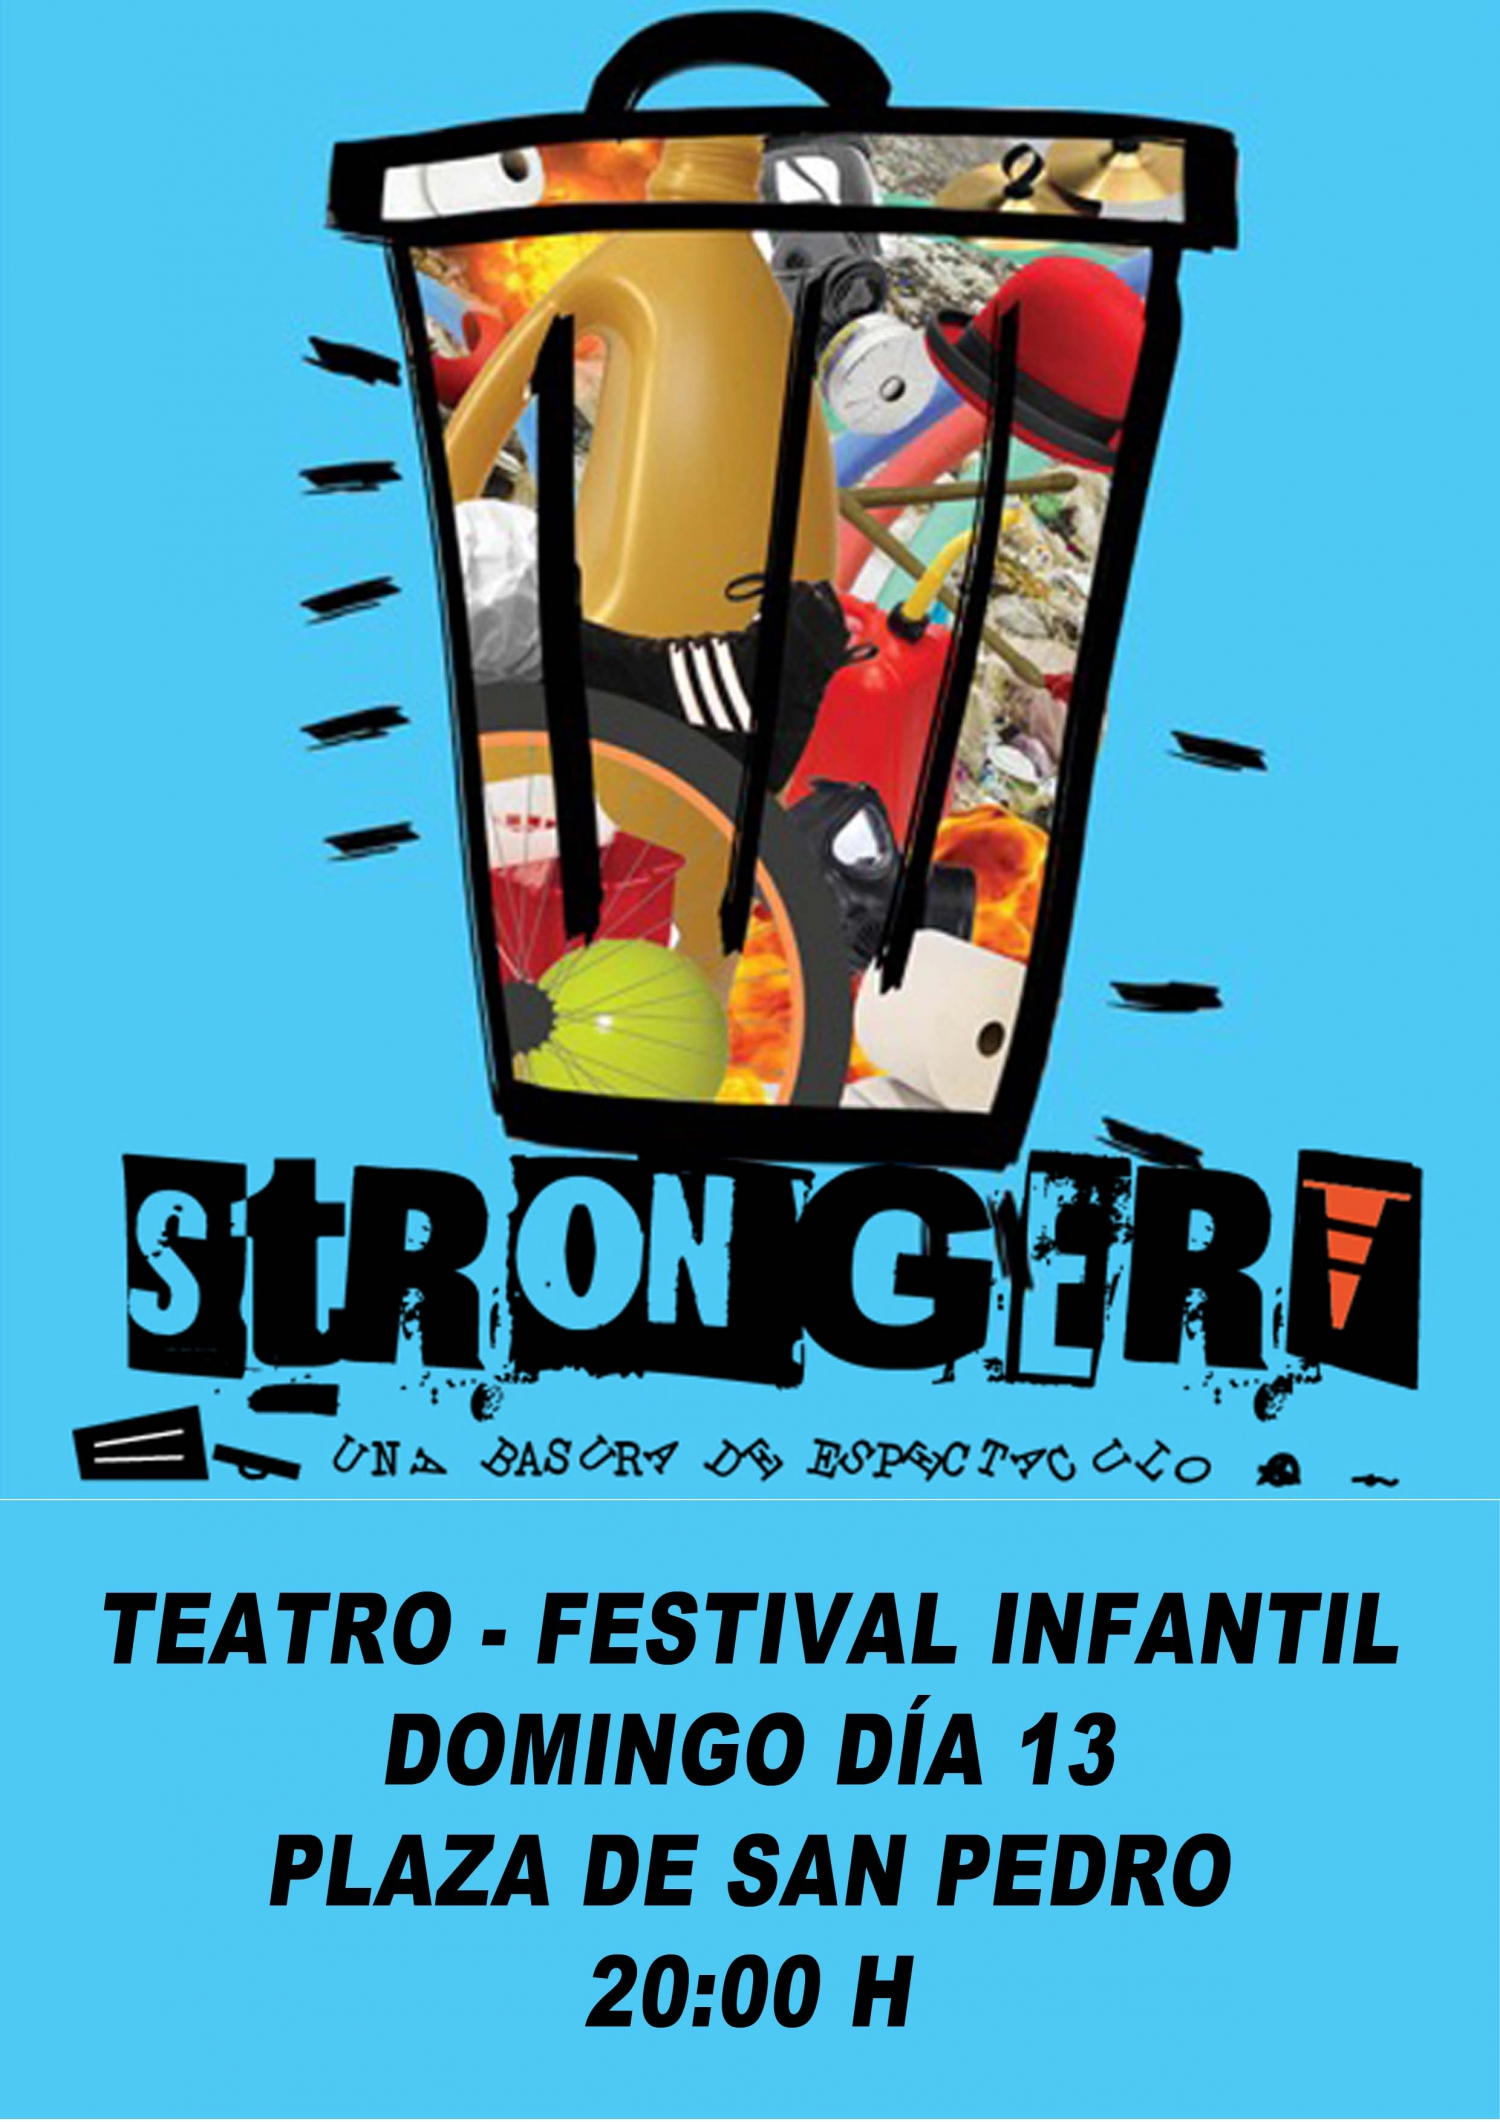 Theatre Festival for Children in Vilaflor